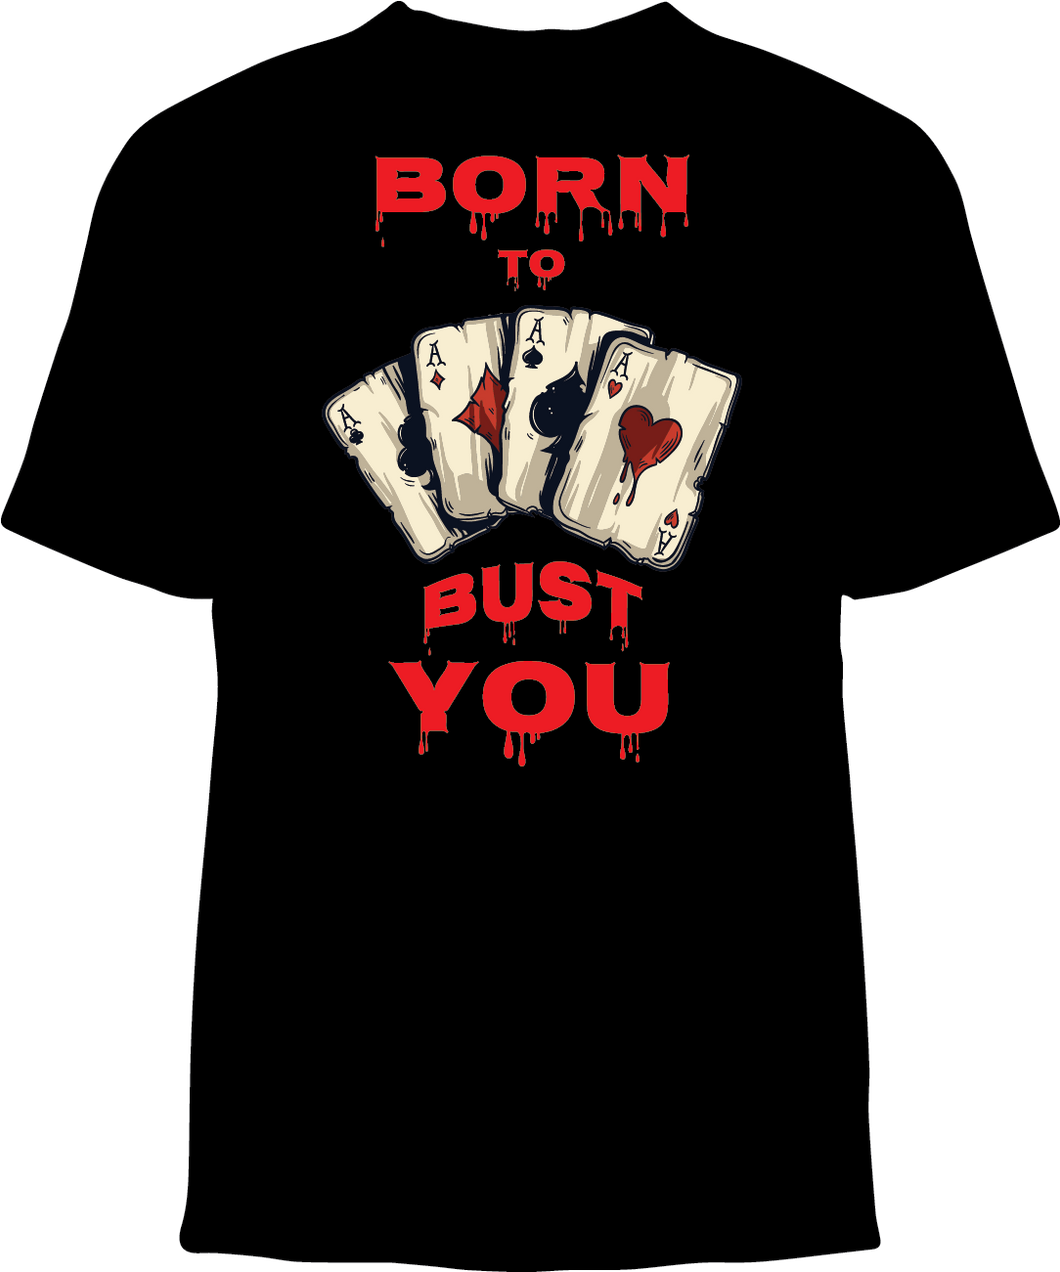 Skelebone Short Sleeve T-shirt, Born To Bust You Front Print